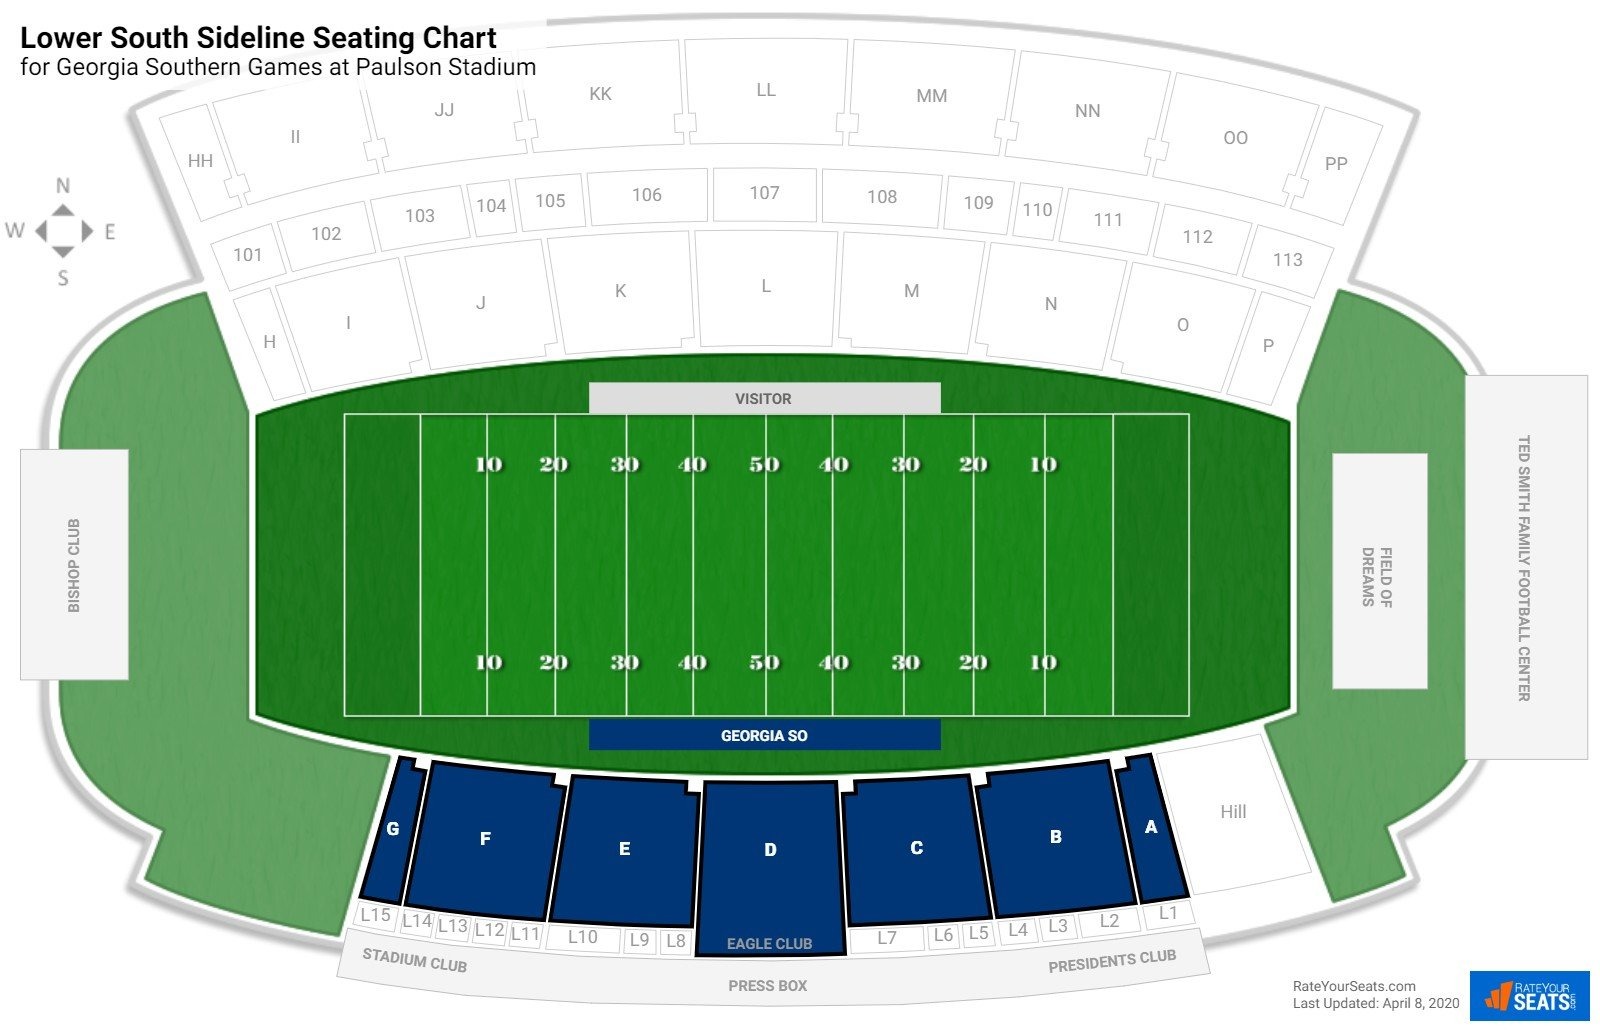 Paulson Stadium Lower South Sideline seating chart